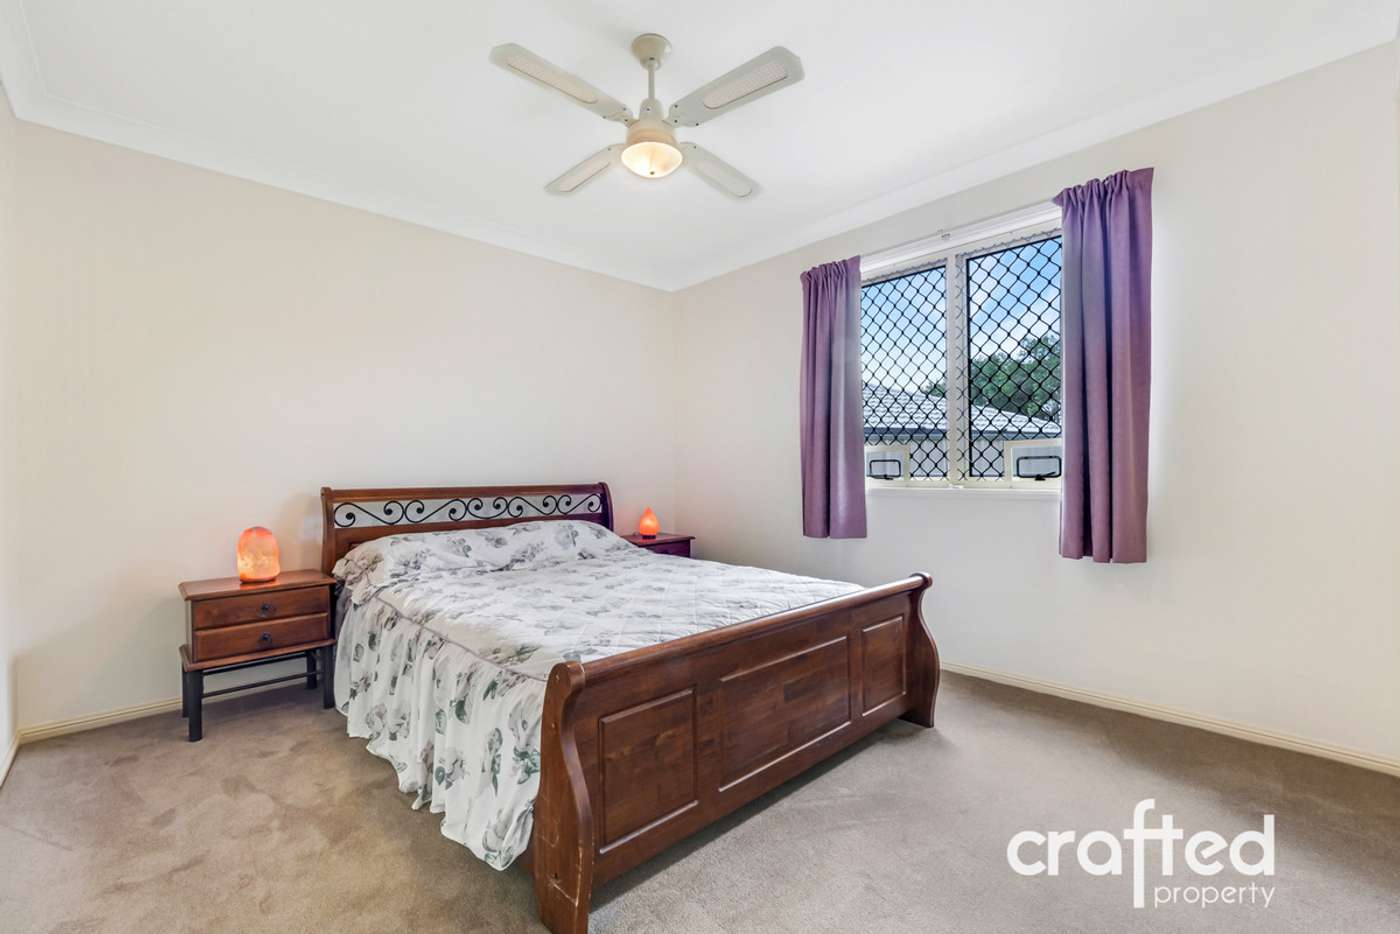 Sixth view of Homely house listing, 48 Murrumbidgee Street, Hillcrest QLD 4118